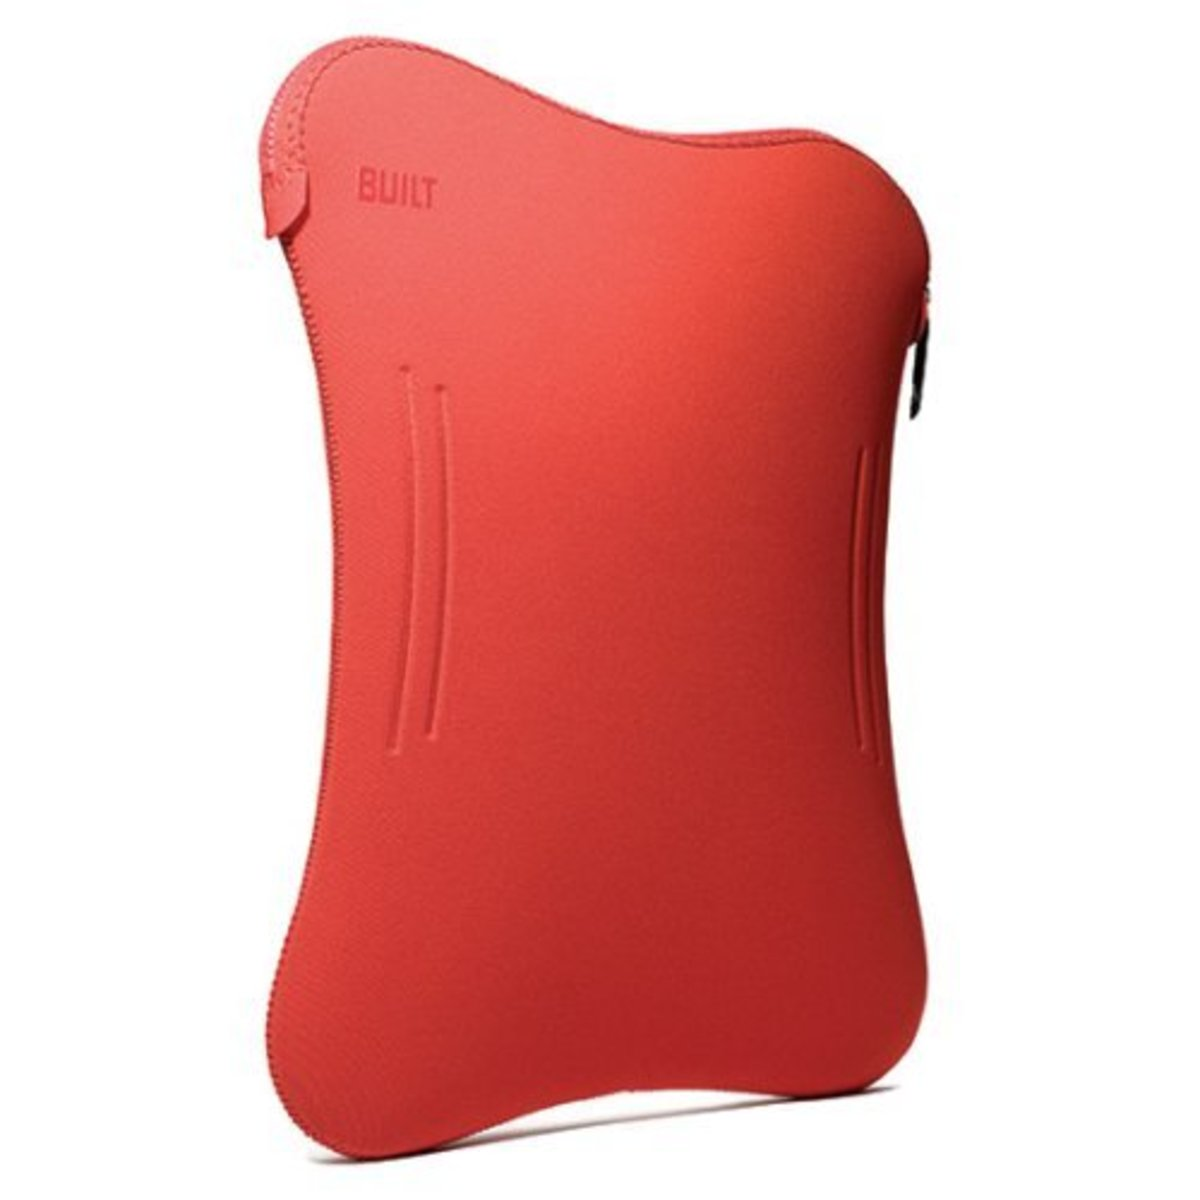 Built E-LS17-FOR 17-Inch Laptop Sleeve (Fiery Orange)